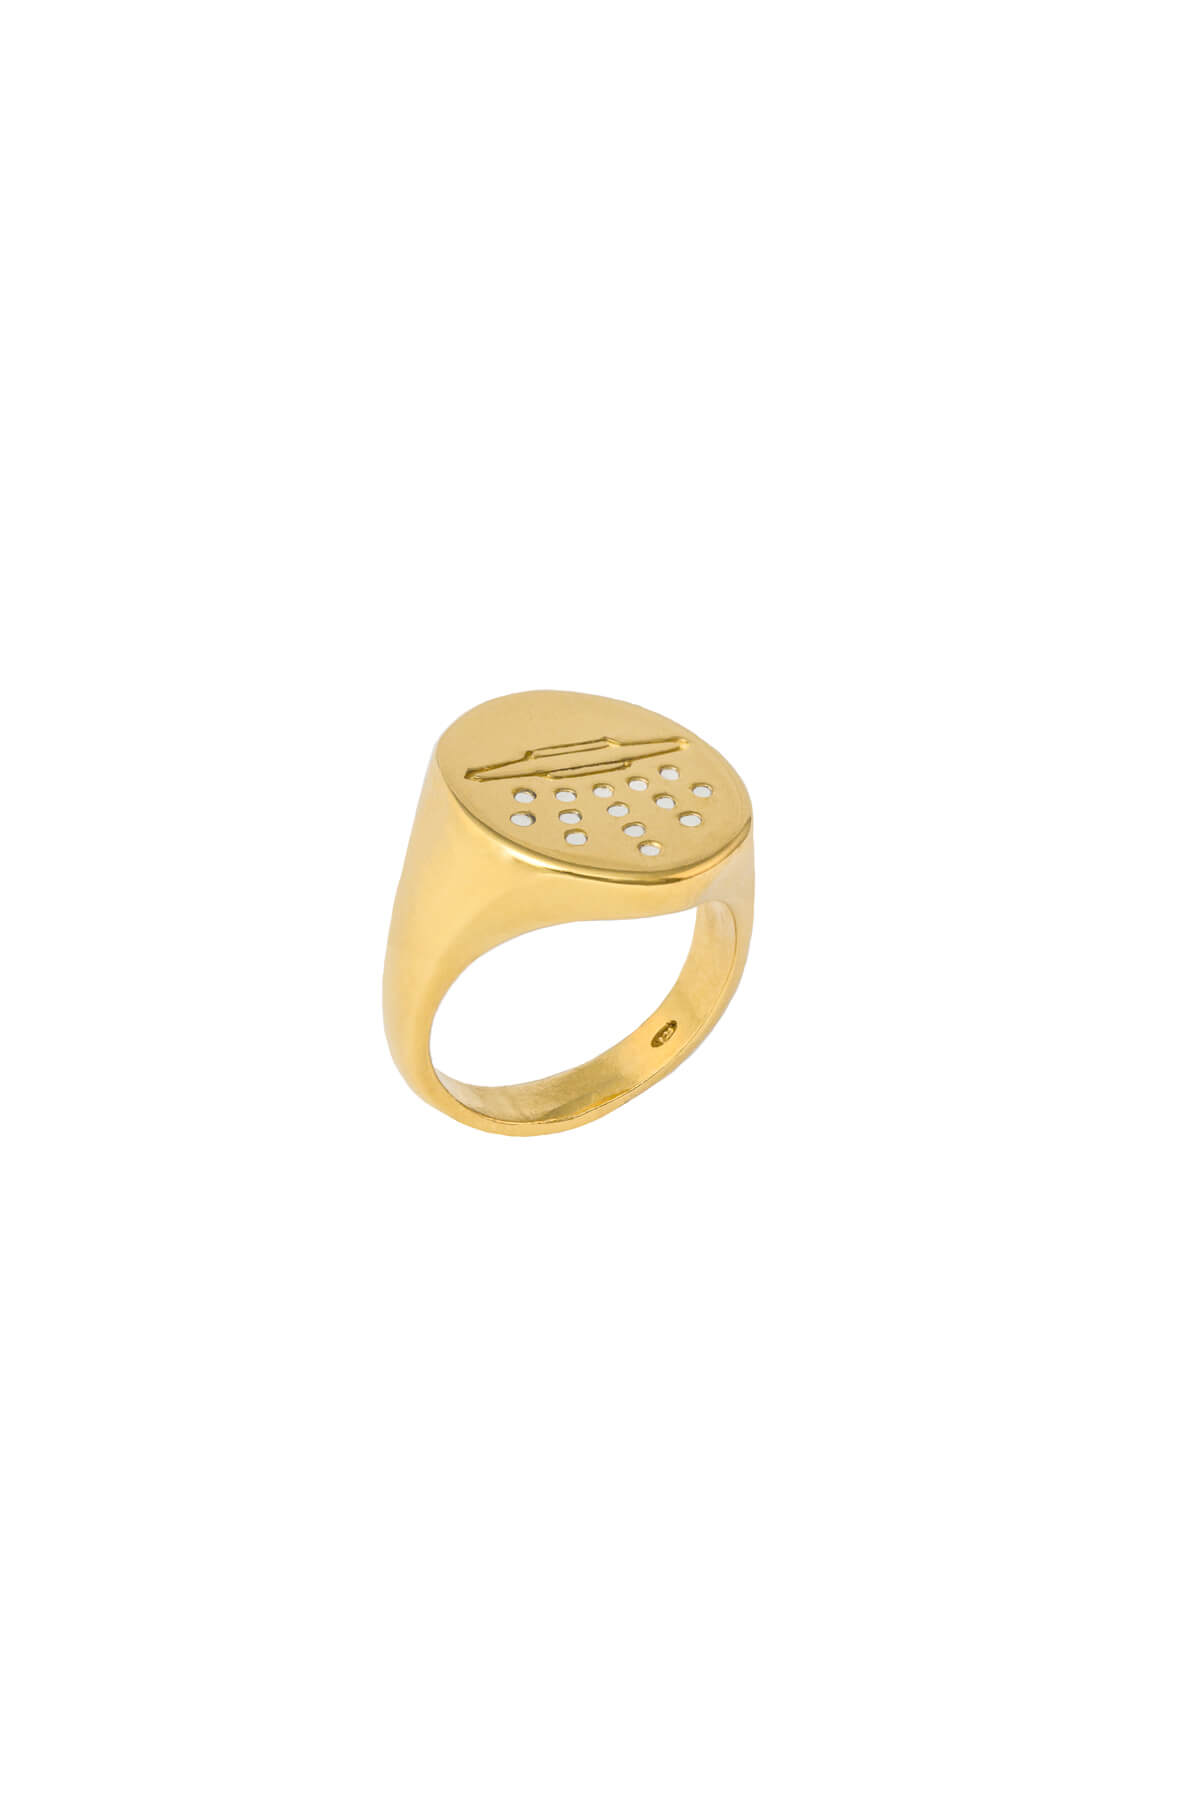 the-ufo-signet-ring-by-glenda-lopez-perspectiva